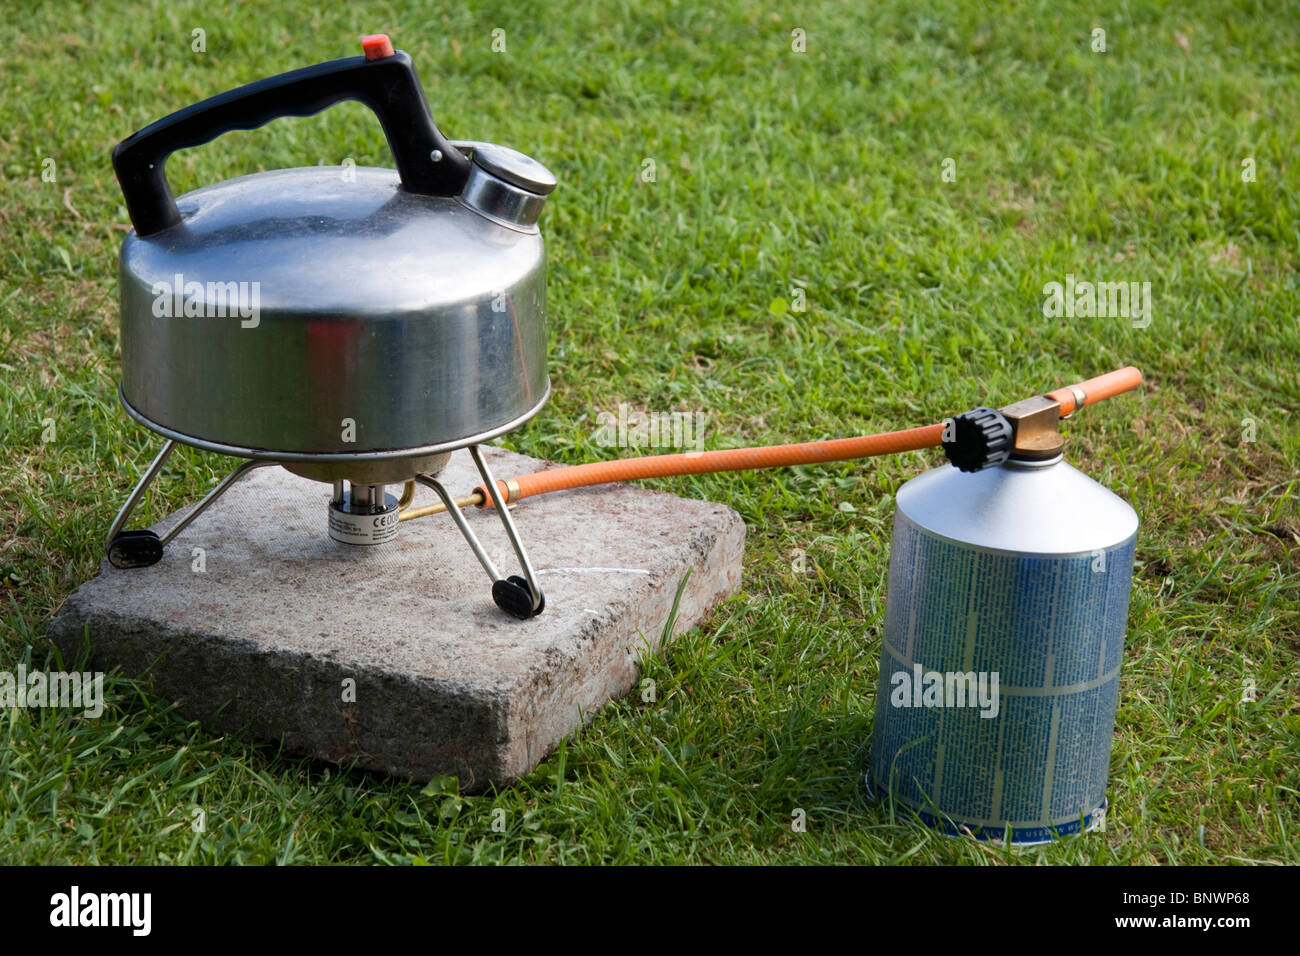 Camping gas cooker with kettle - Stock Image